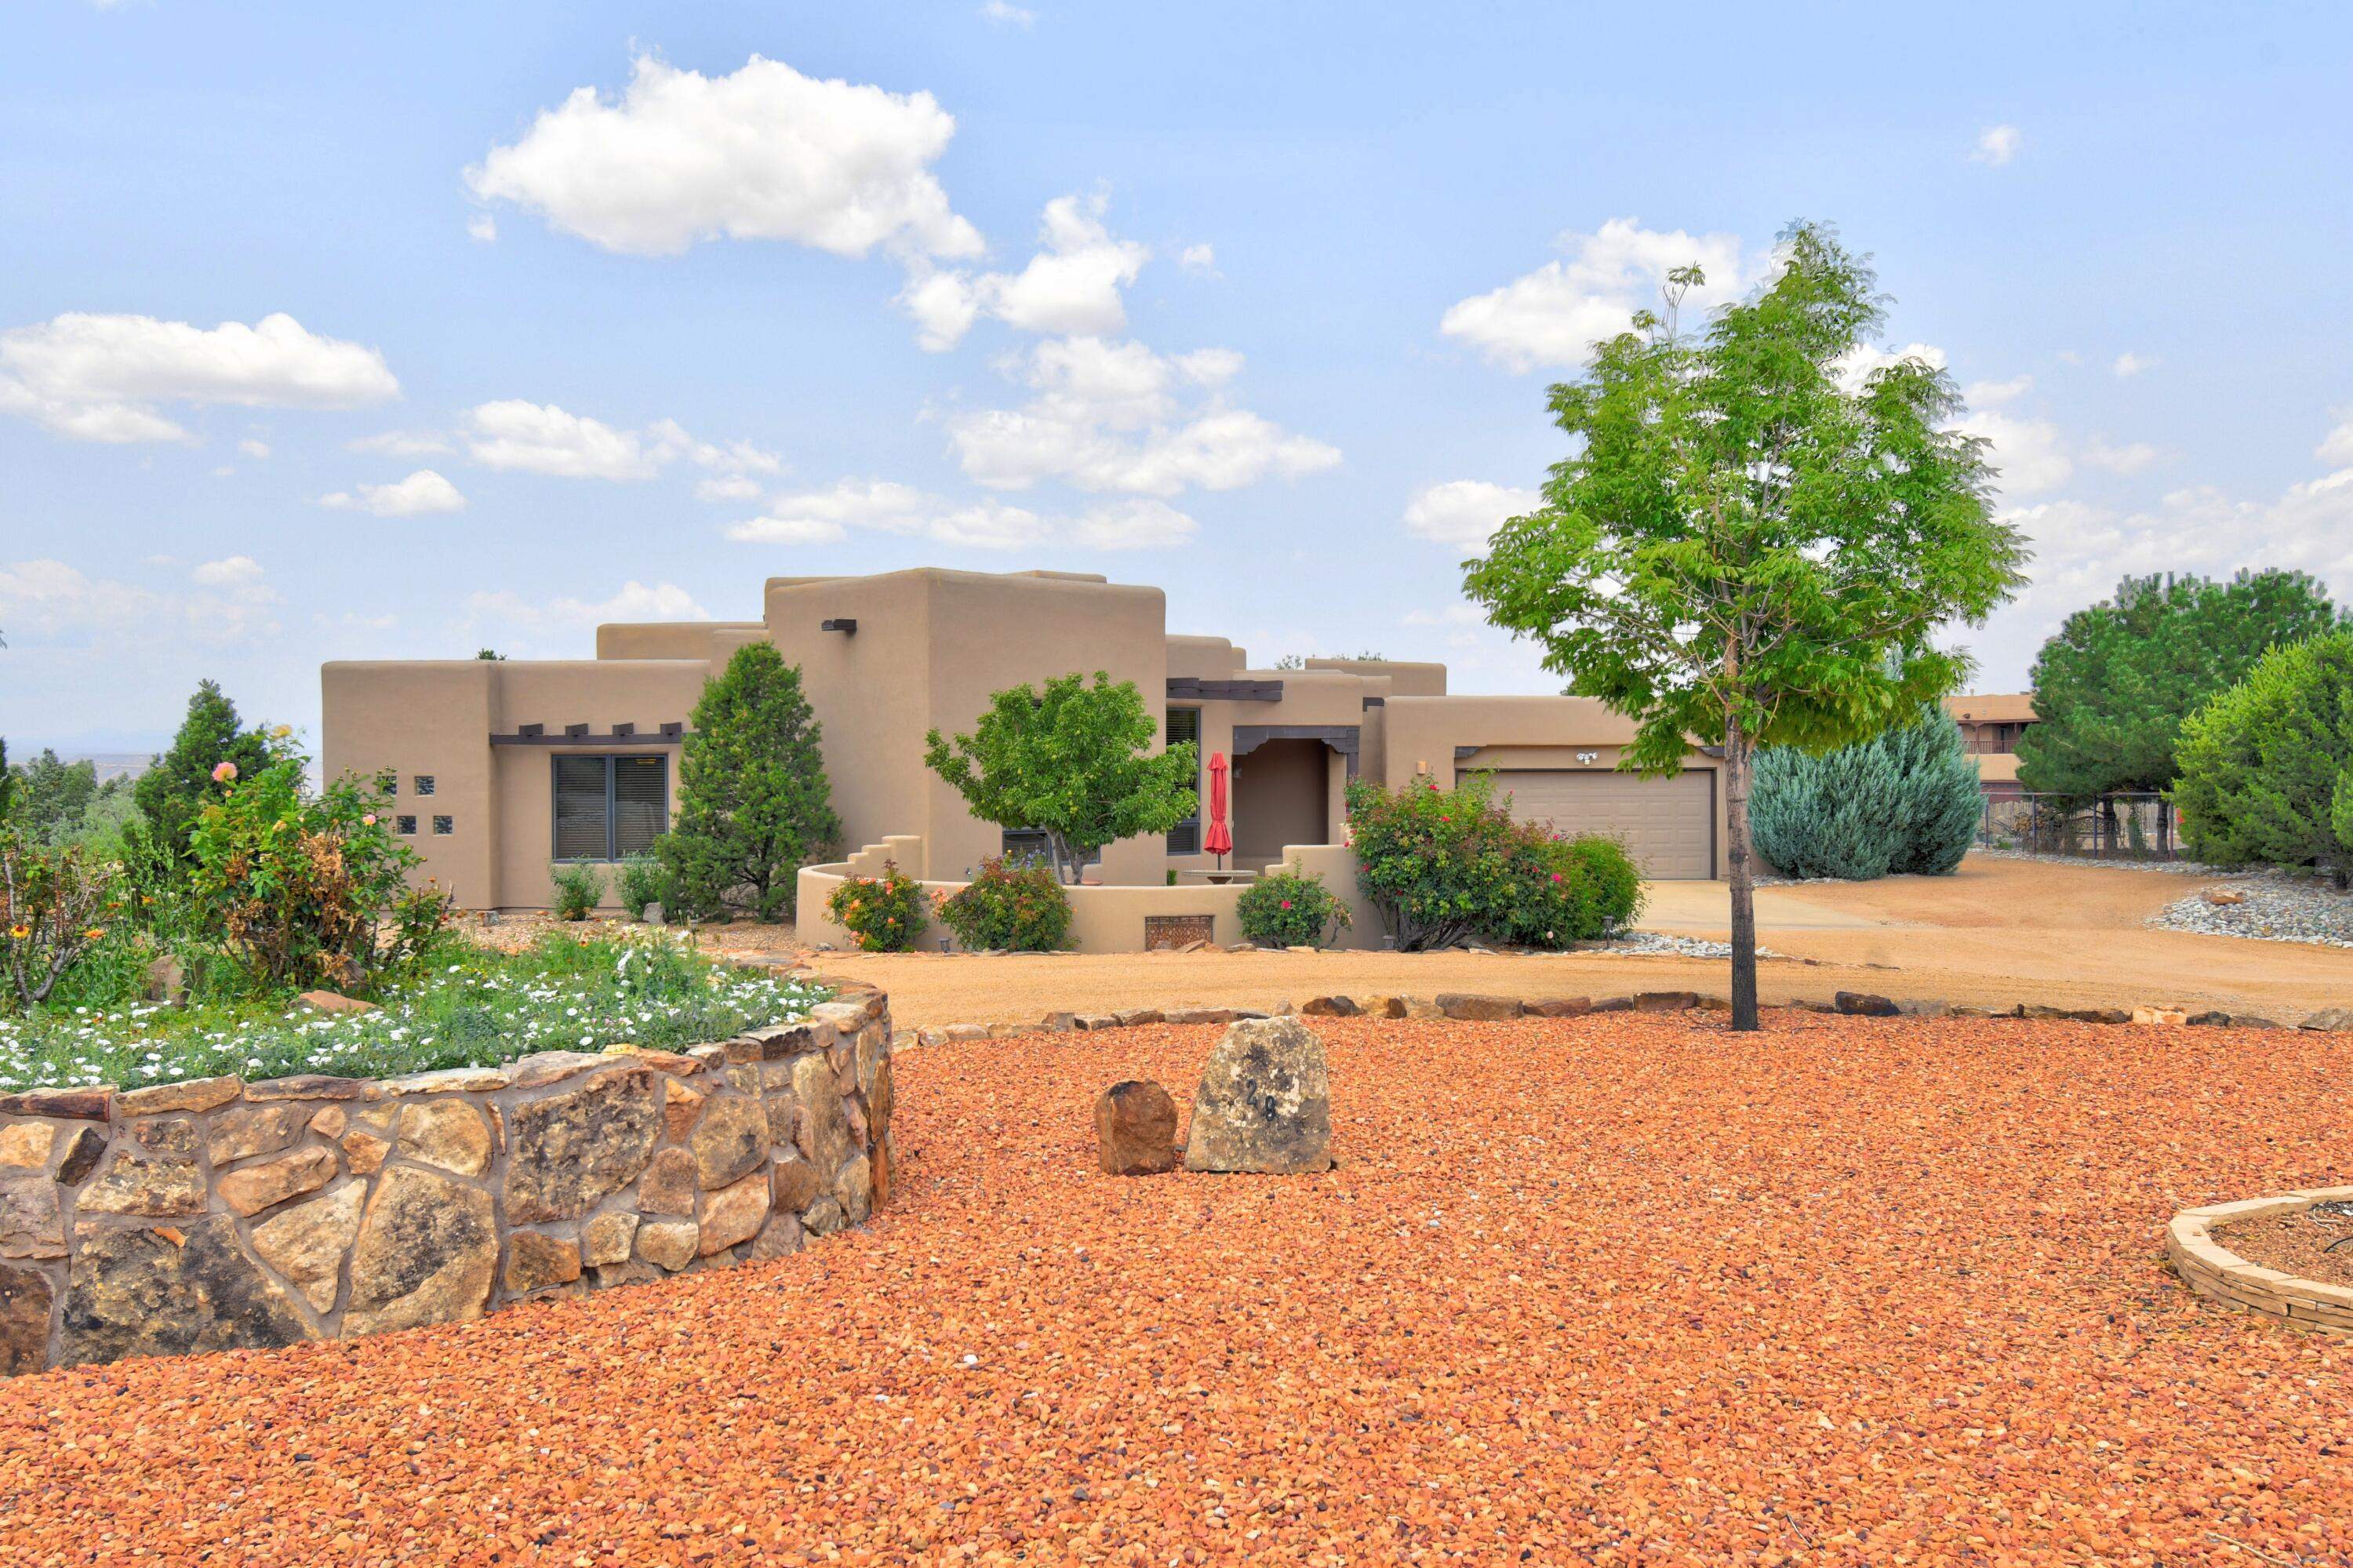 Exceptional custom home with fabulous west mesa and Sandia Mountain views. Watch beautiful New Mexico sunsets from the living room, primary bedroom and bathroom. Manicured professional landscaping front and back that includes a custom seated fire pit and all kinds of hardscape details. The interior boasts designer paint, ceilings and lighted niches throughout. The kitchen has granite countertops, built-in stainless steel appliances and a walk-in pantry. The living room has high ceilings with beams, built-in shelves and a fantastic custom kiva fireplace. It overlooks the covered patio and impressive outdoor views. Granite countertops, custom cabinetry, round jetted tub and lots of tile make the spacious bathroom a dream. Tankless water heater and water softener. Just minutes to I-25!